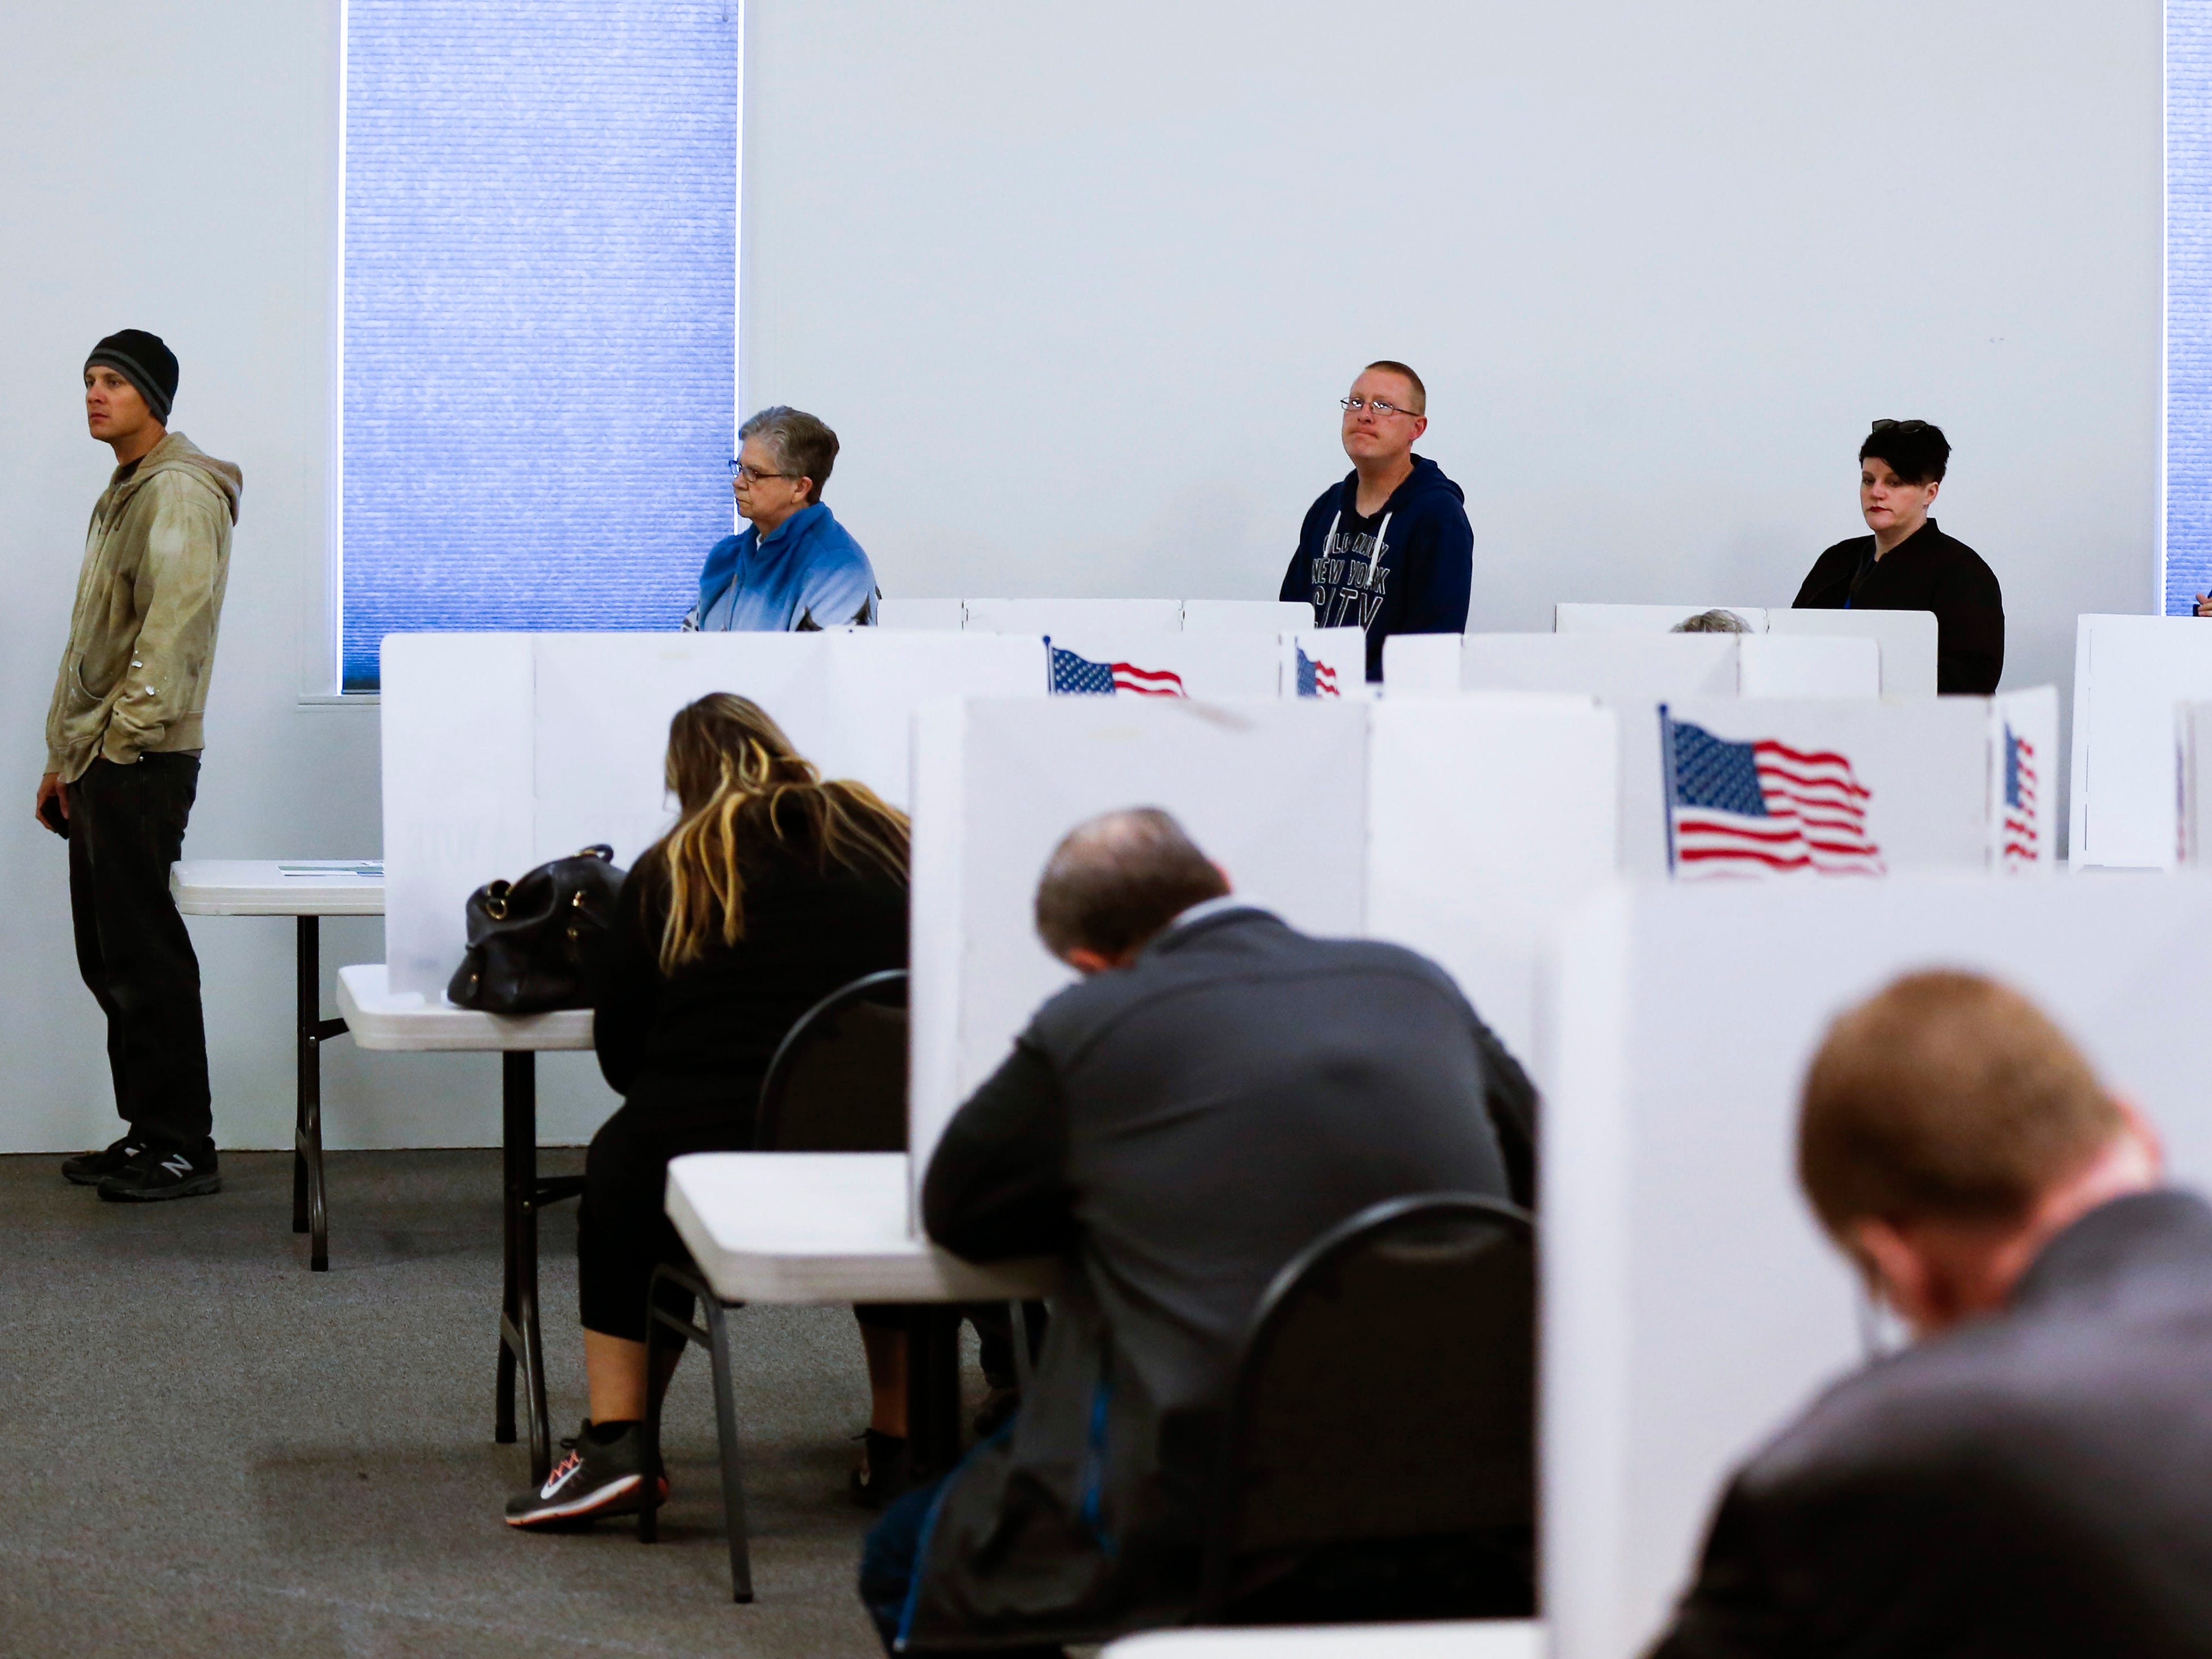 Voters cast their ballots at the Springfield Bible Church polling location on Tuesday, Nov. 6, 2018.